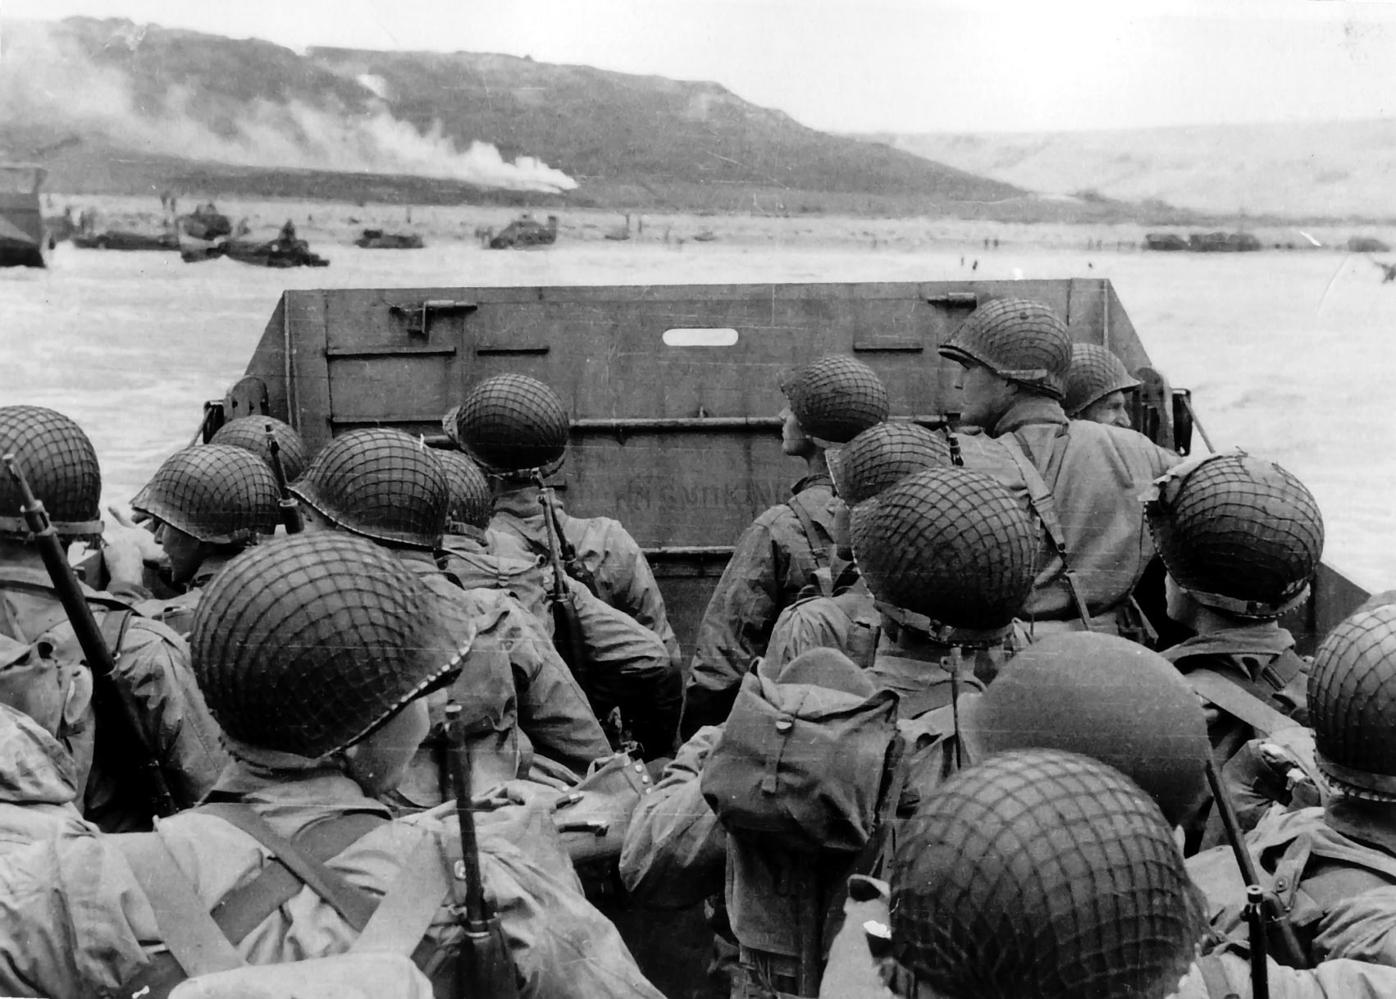 American troops on D-Day